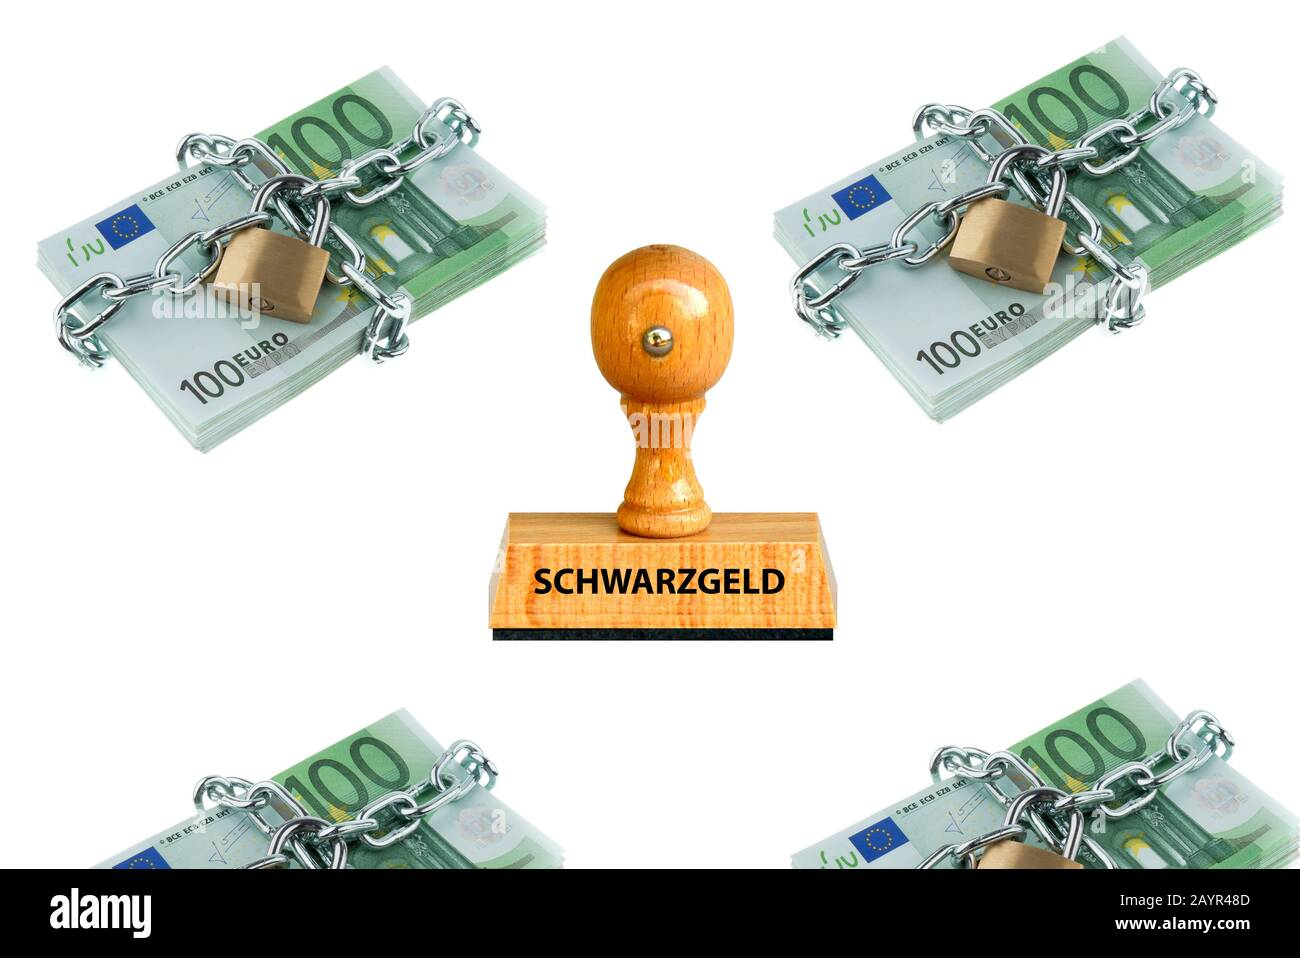 stamp lettering Schwarzgeld, black money, 100 Euro bills with chain locks in the background, Germany Stock Photo